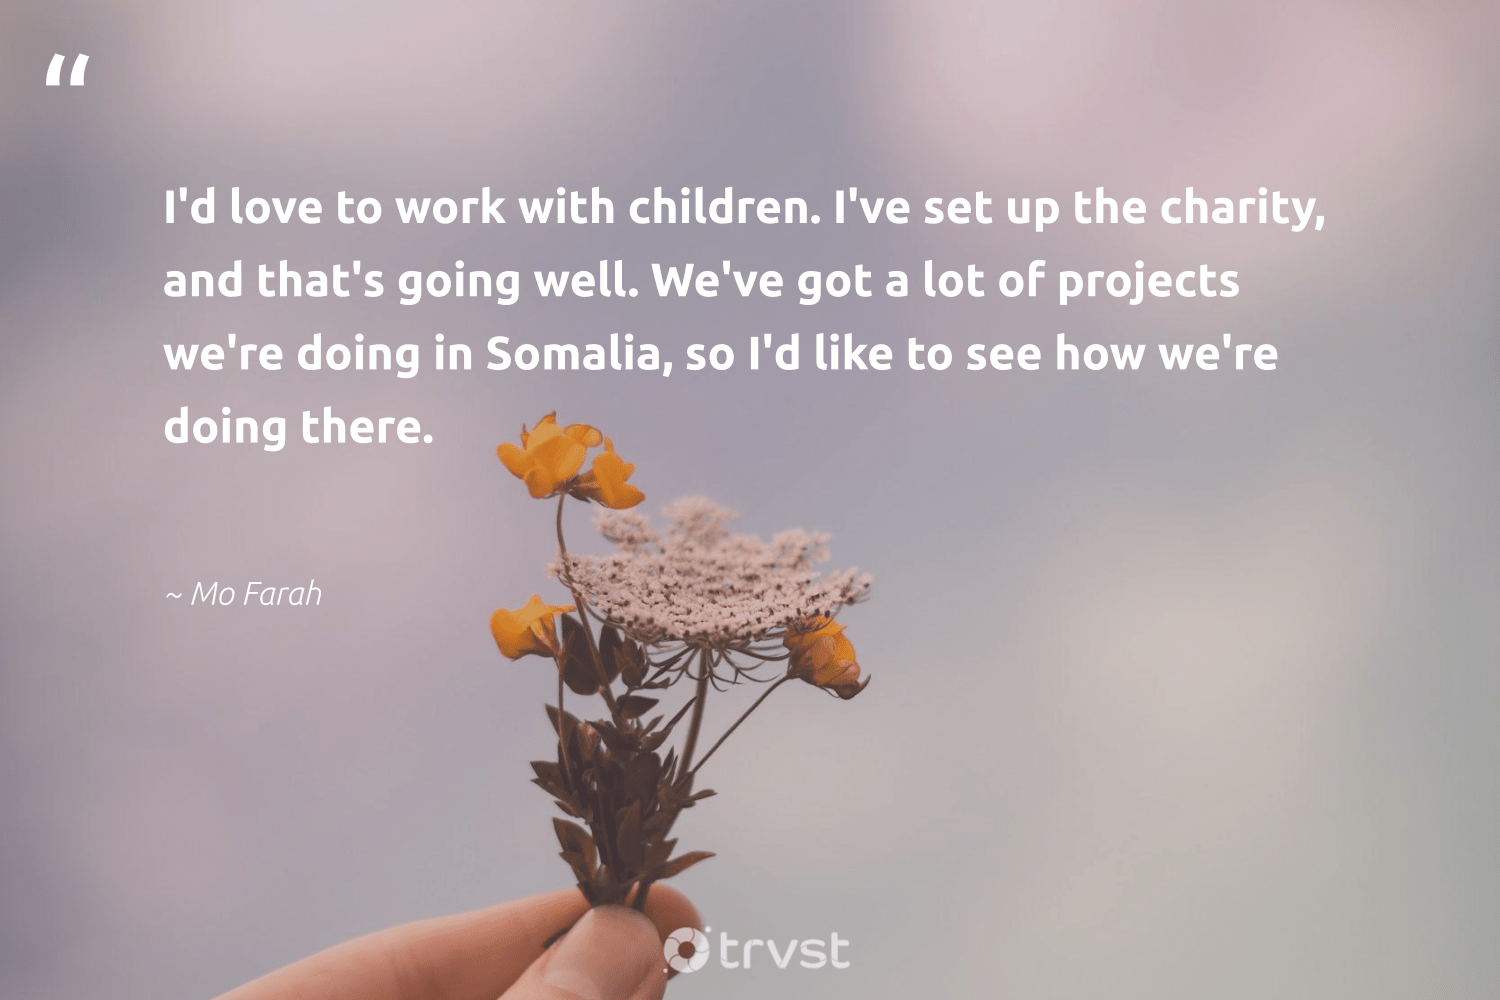 """""""I'd love to work with children. I've set up the charity, and that's going well. We've got a lot of projects we're doing in Somalia, so I'd like to see how we're doing there.""""  - Mo Farah #trvst #quotes #love #children #communities #gogreen #equalopportunity #dogood #strongercommunities #changetheworld #makeadifference #impact"""